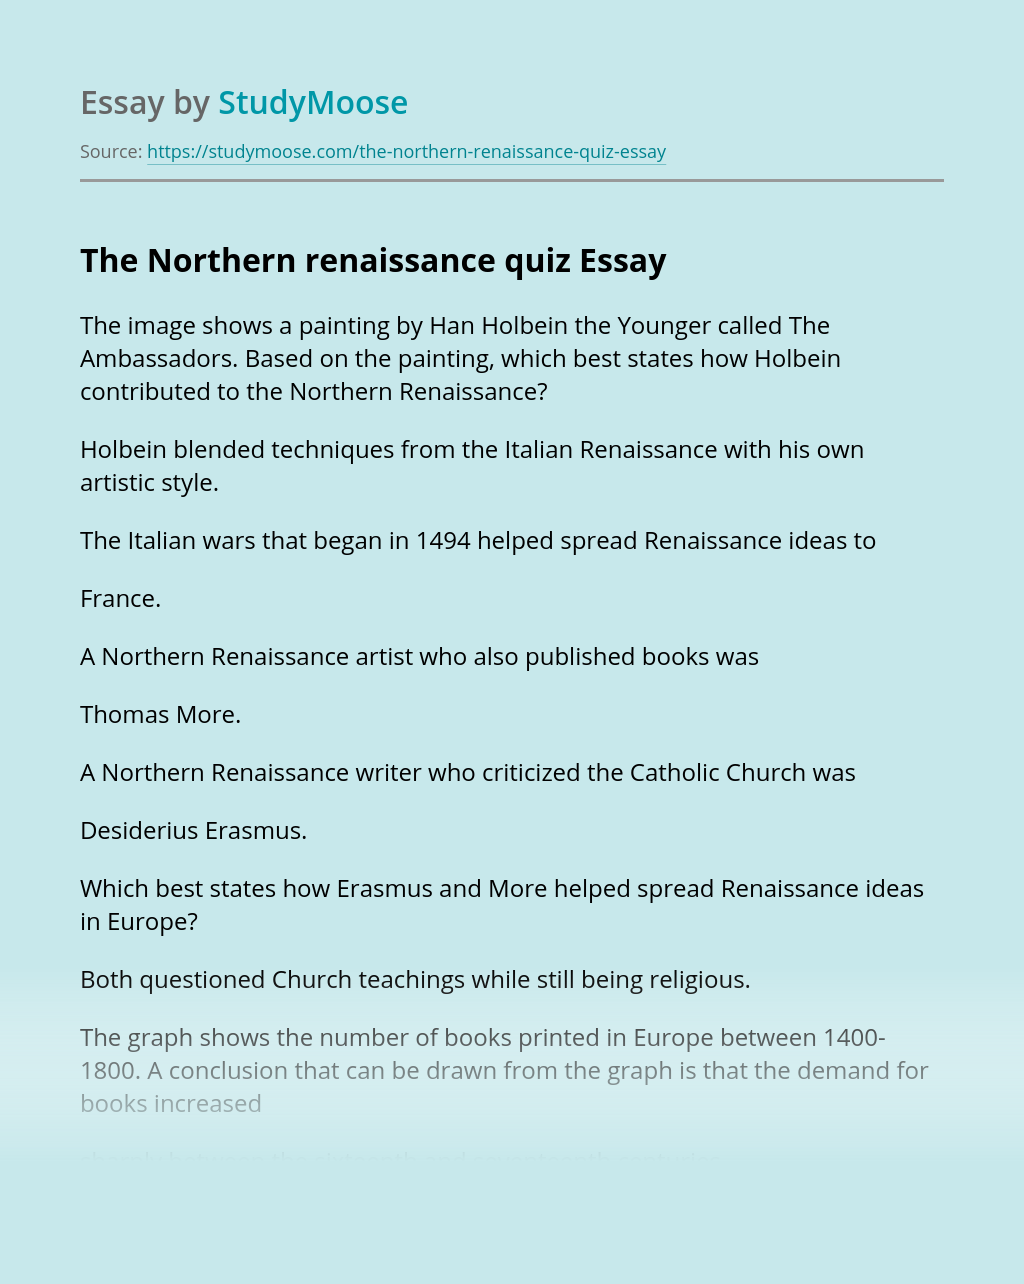 The Northern renaissance quiz